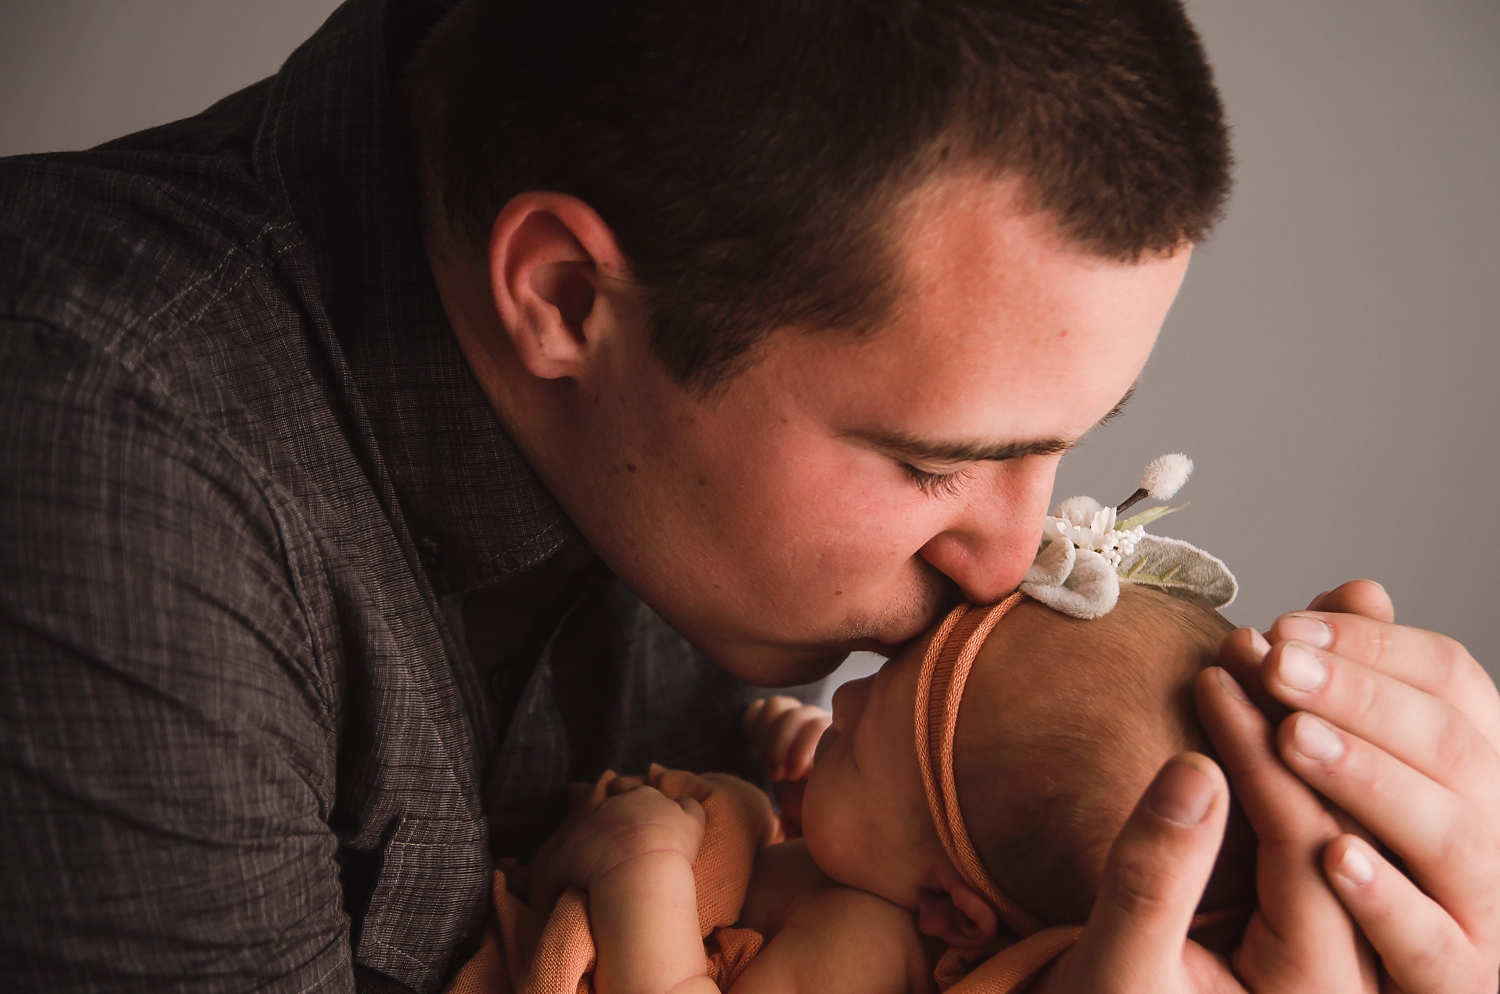 Dad gives his newborn daughter a kiss